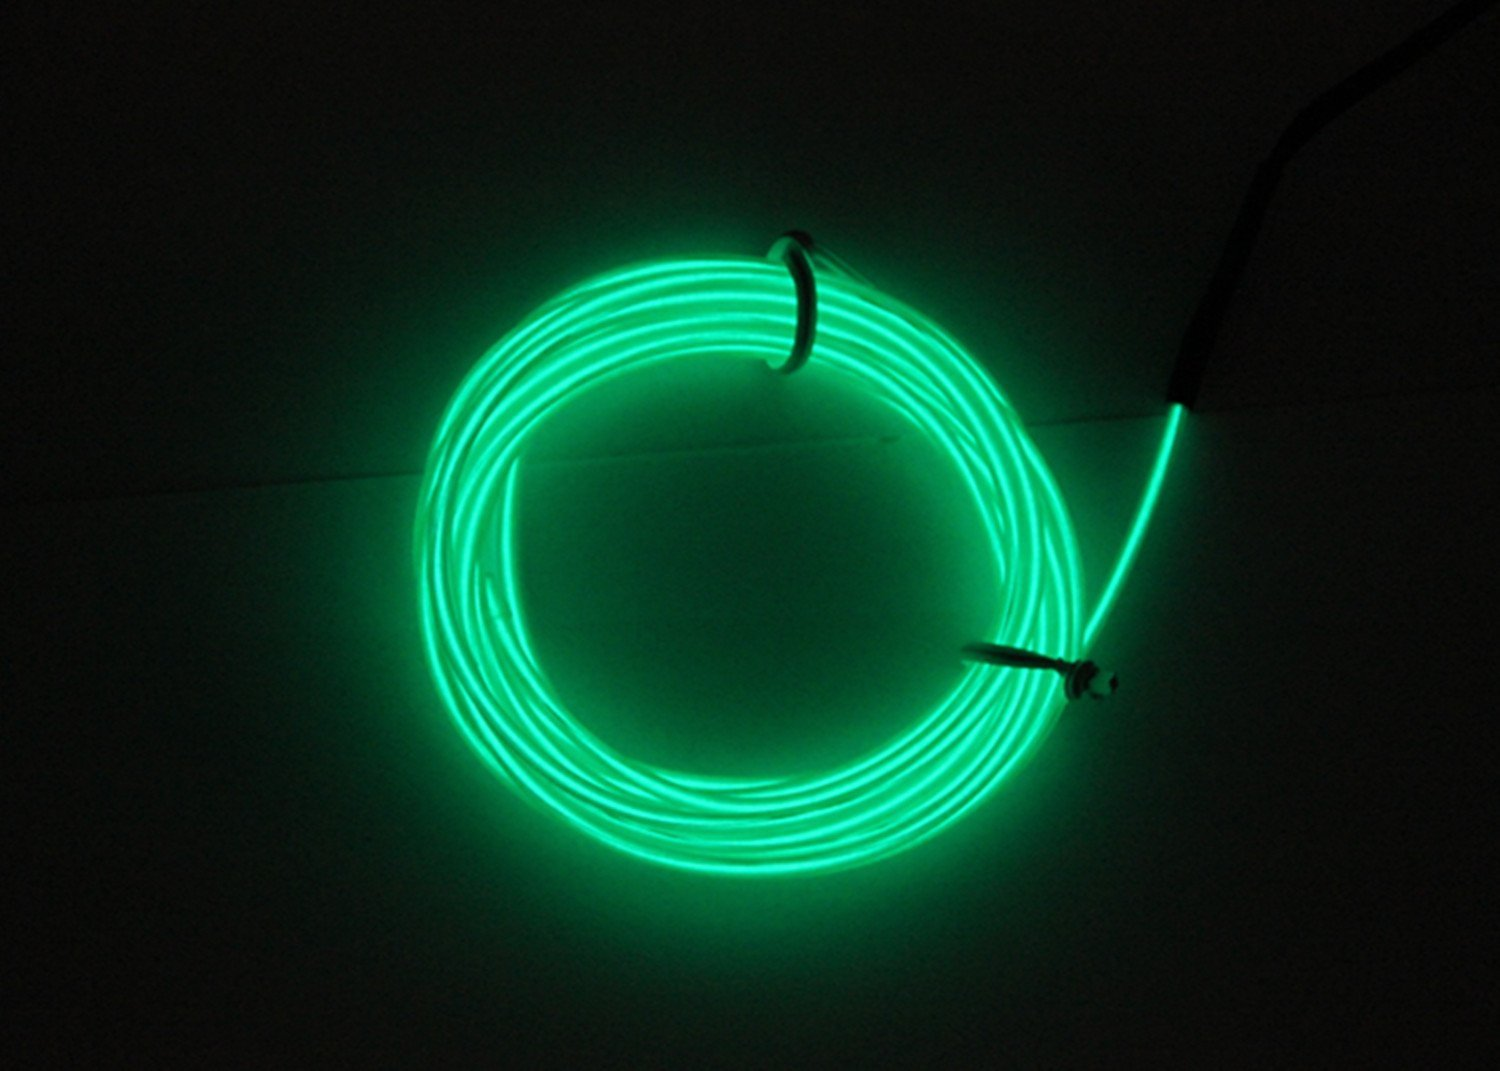 Amazon.com: Portable EL Wire 10 Feet Long (Green): Home & Kitchen